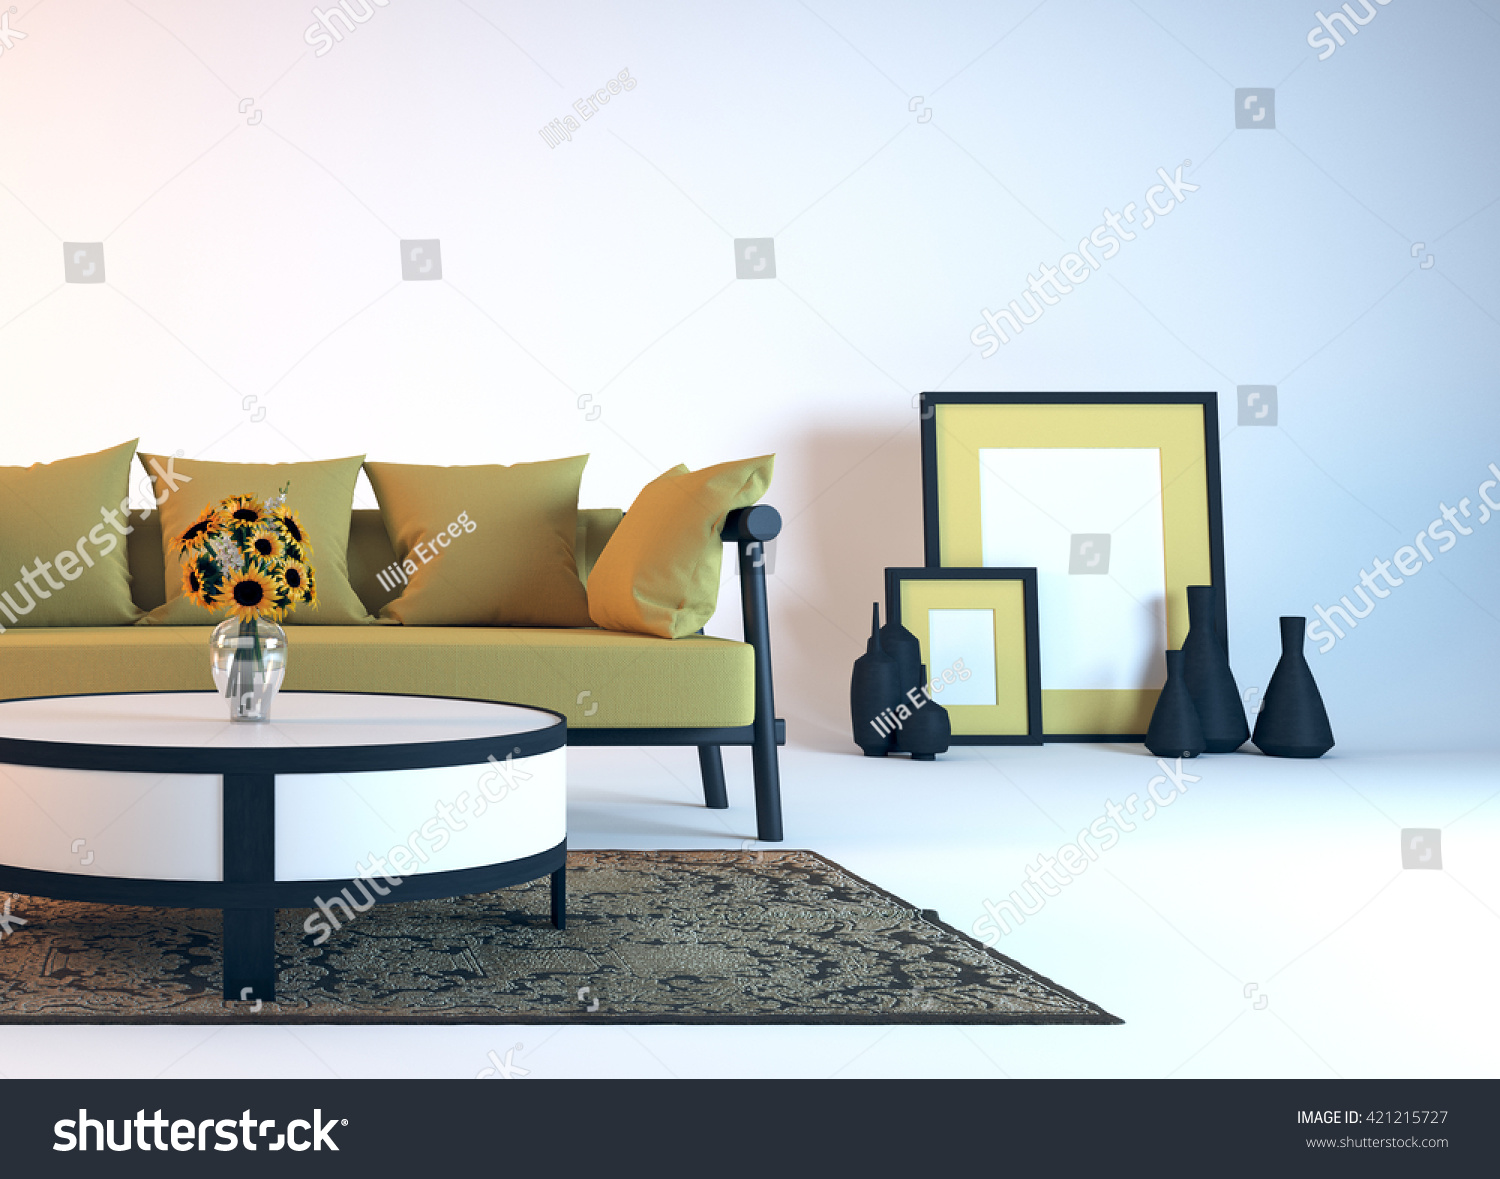 Modern interior design of living room 3D illustration  3D rendering. Modern Interior Design Living Room 3d Stock Illustration 421215727